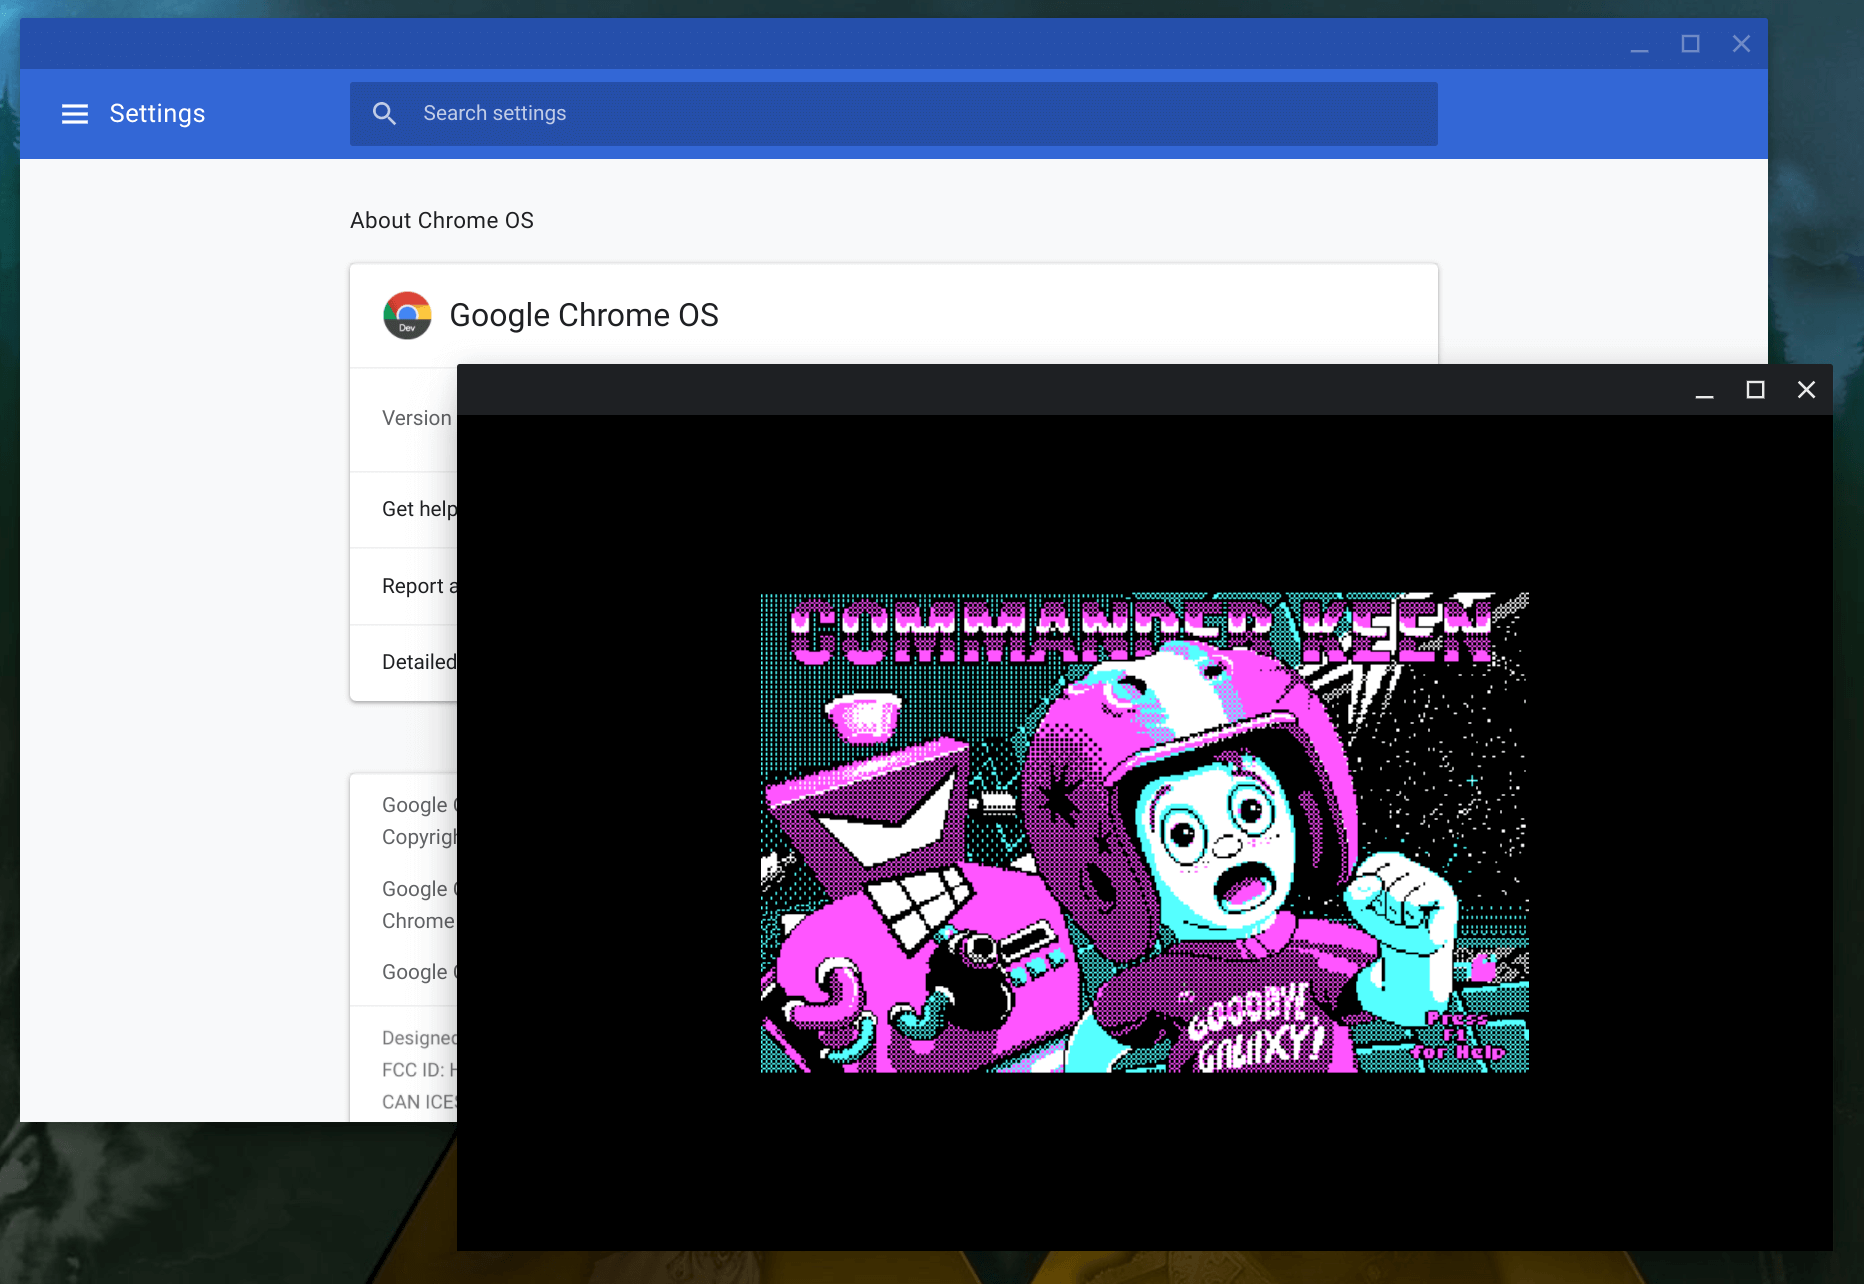 ChromeOS 74.0.L337.0 Rolling out to the Dev Channel – Enables MS-DOS Mode with Full CGI Graphic Stack